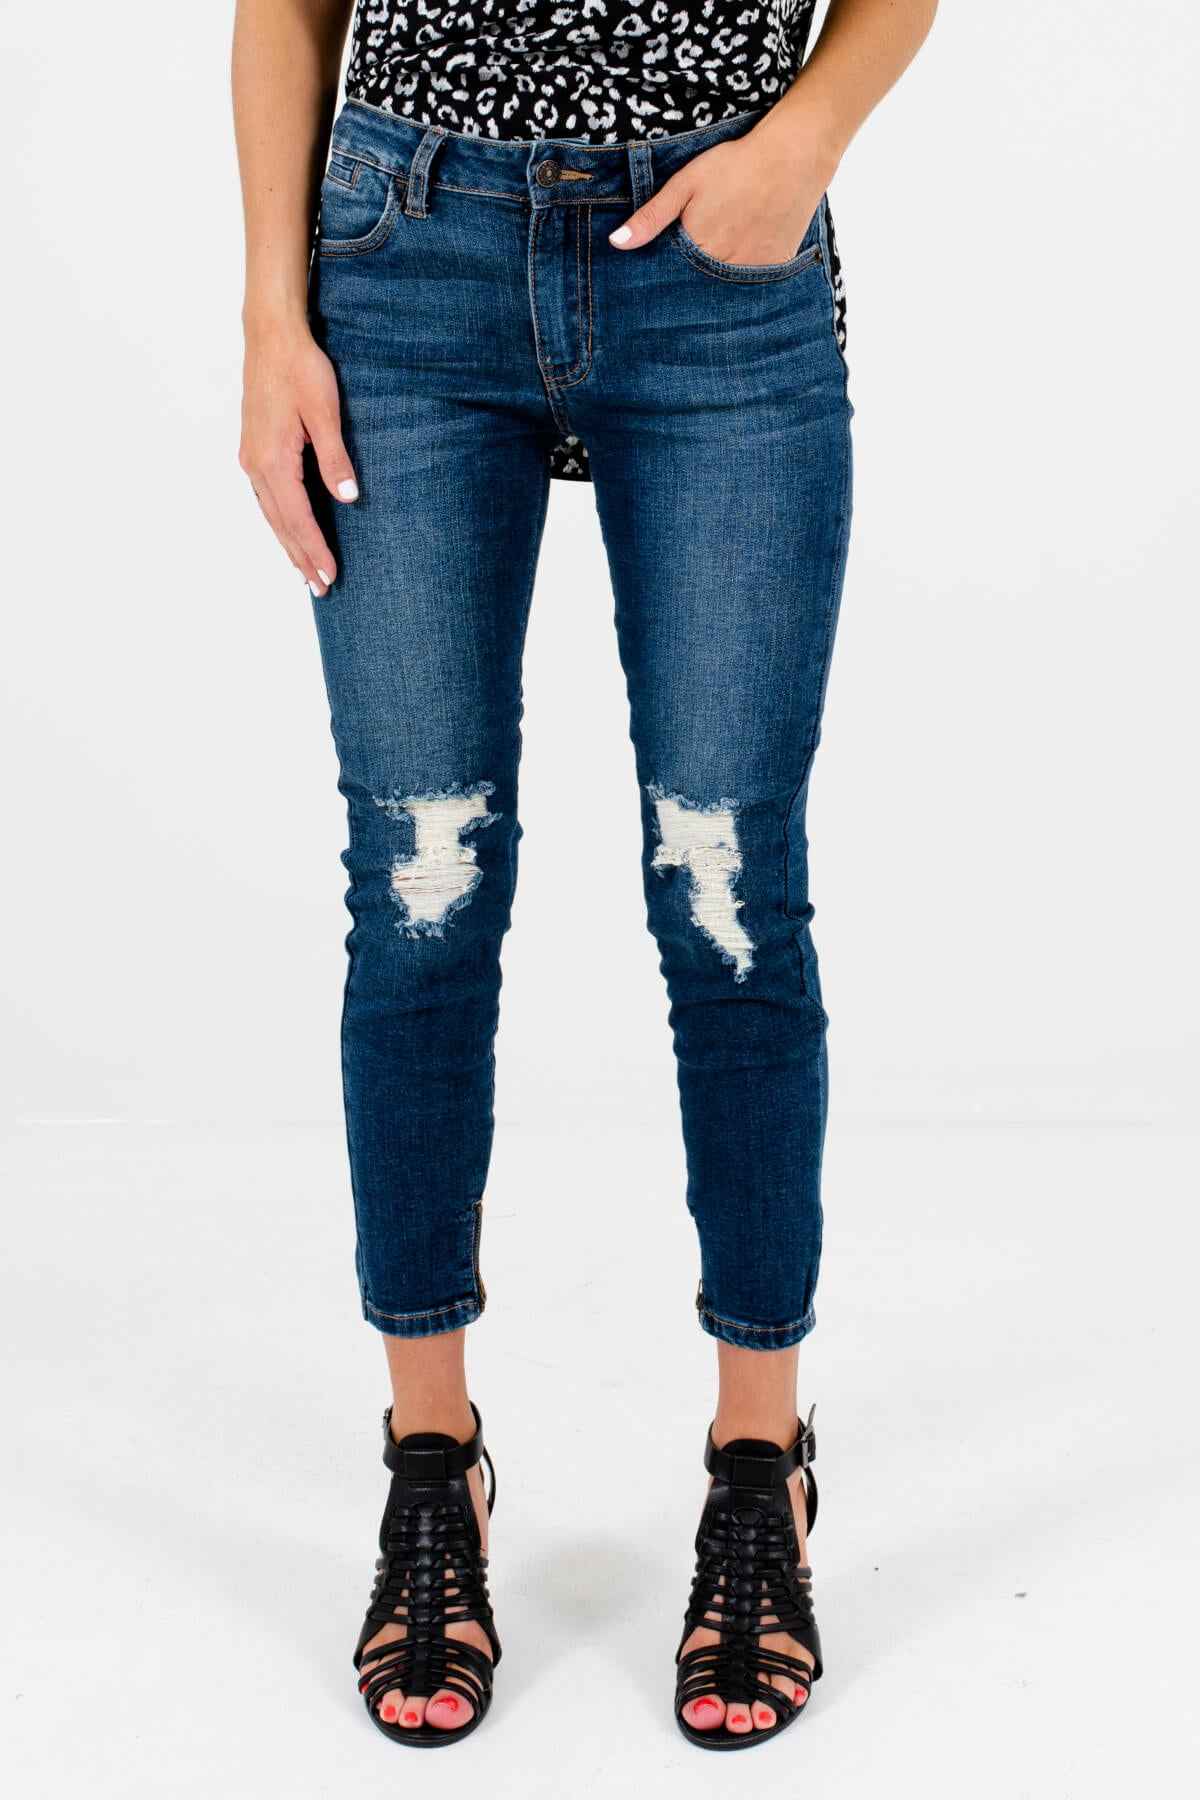 Dark Wash Denim Blue Distressed Boutique Skinny Jeans for Women